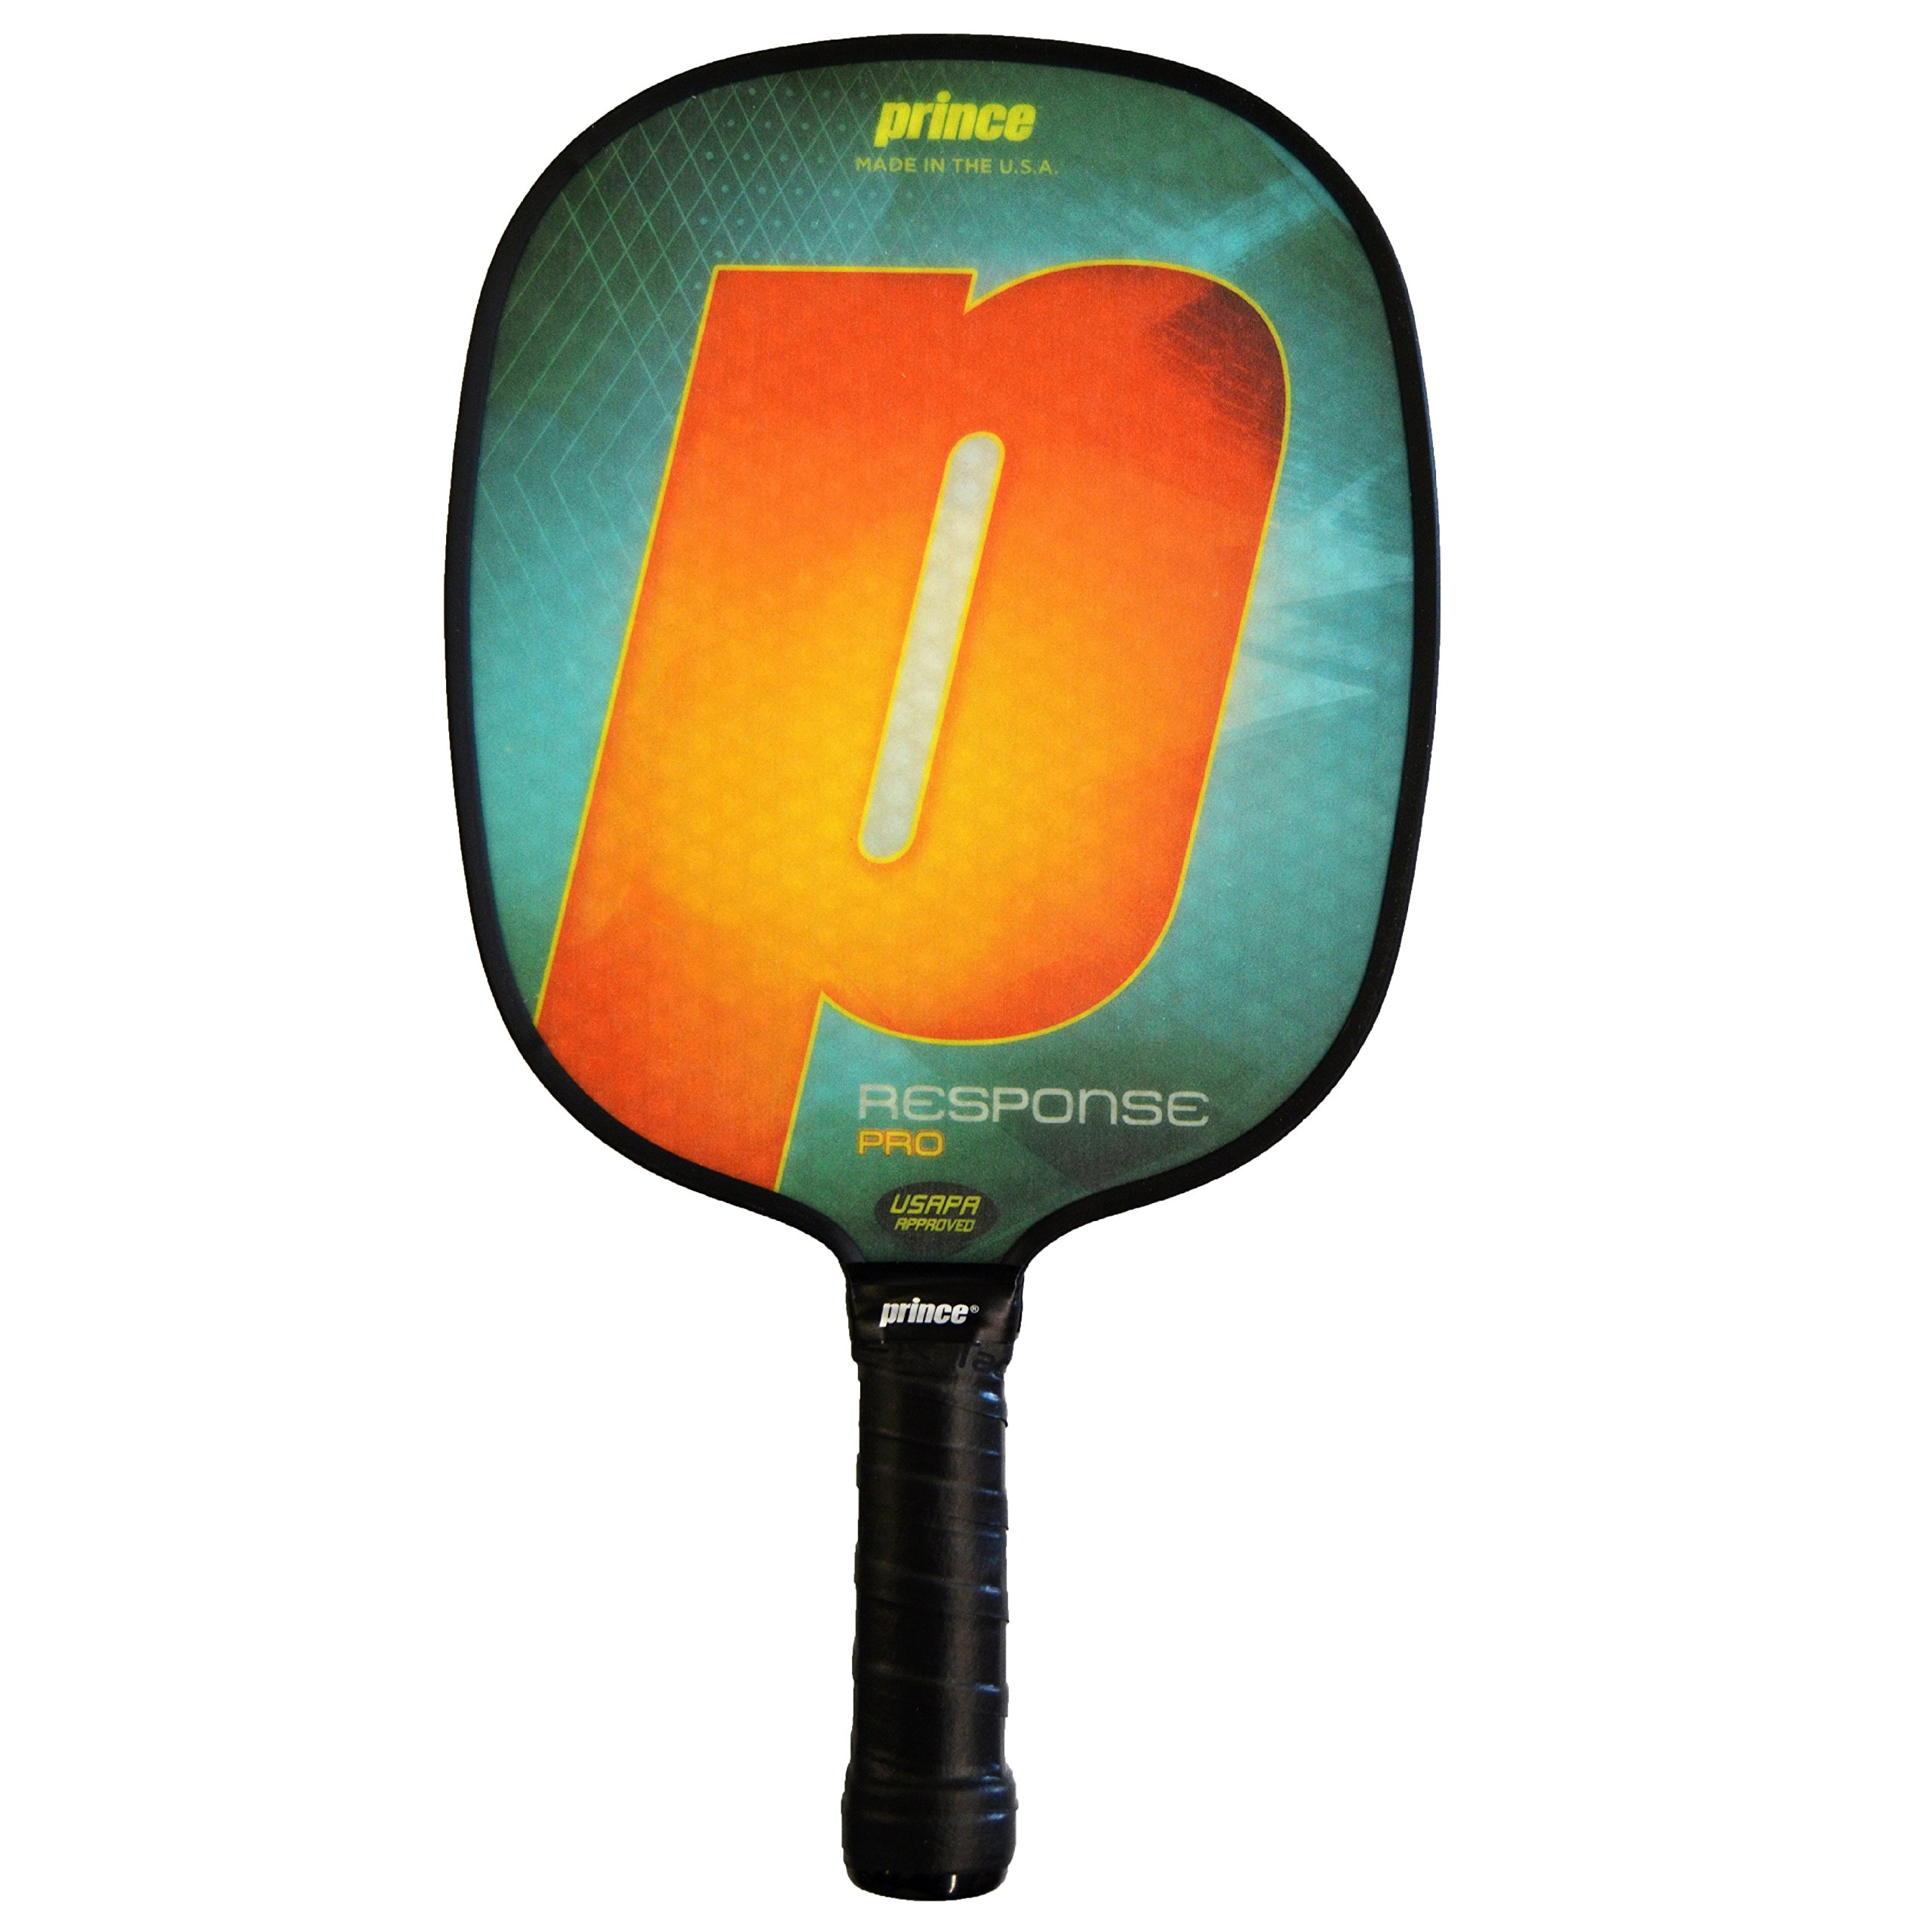 Prince Response Pro Pickleball Paddle | Orange | 4 1/8'' Small Grip | Light Weight